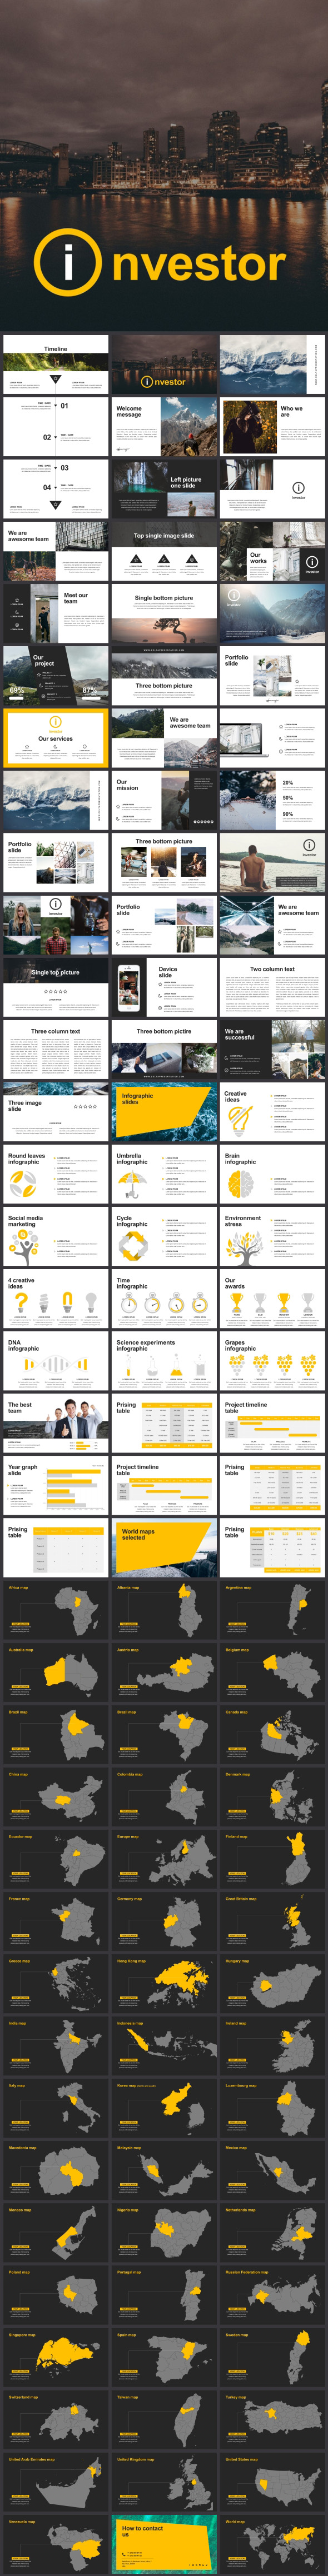 Investor Google Slides Template - Google Slides Presentation Templates